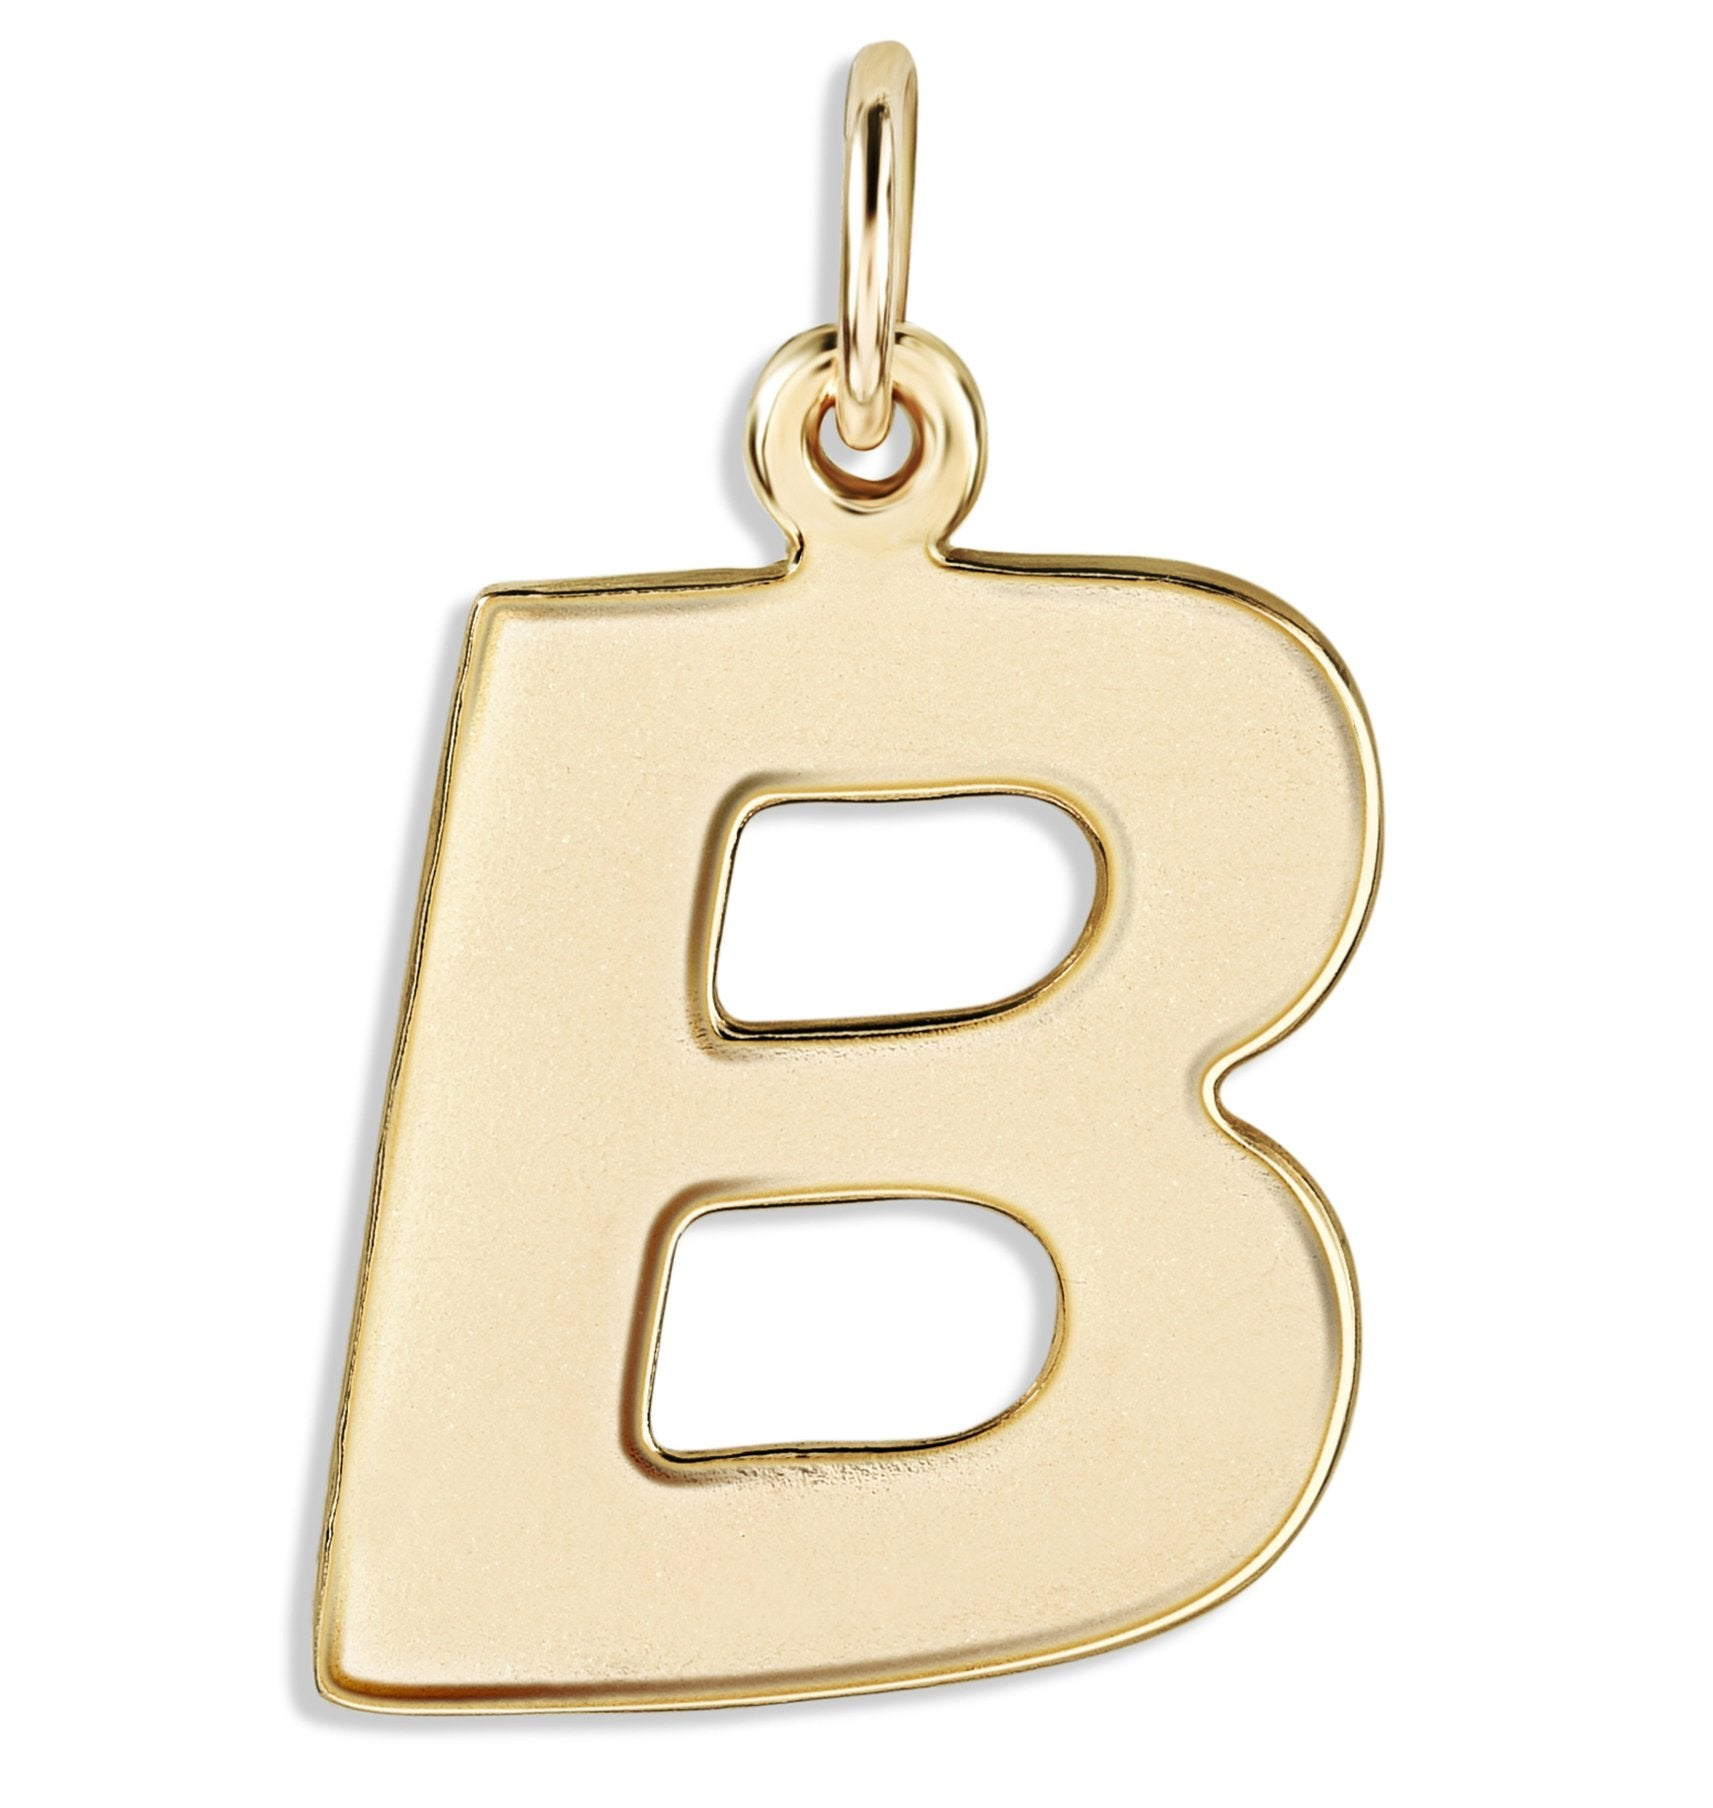 """B"" Cutout Letter Charm 14k Yellow Gold Jewelry For Necklaces And Bracelets From Helen Ficalora Every Letter And Initial Available"